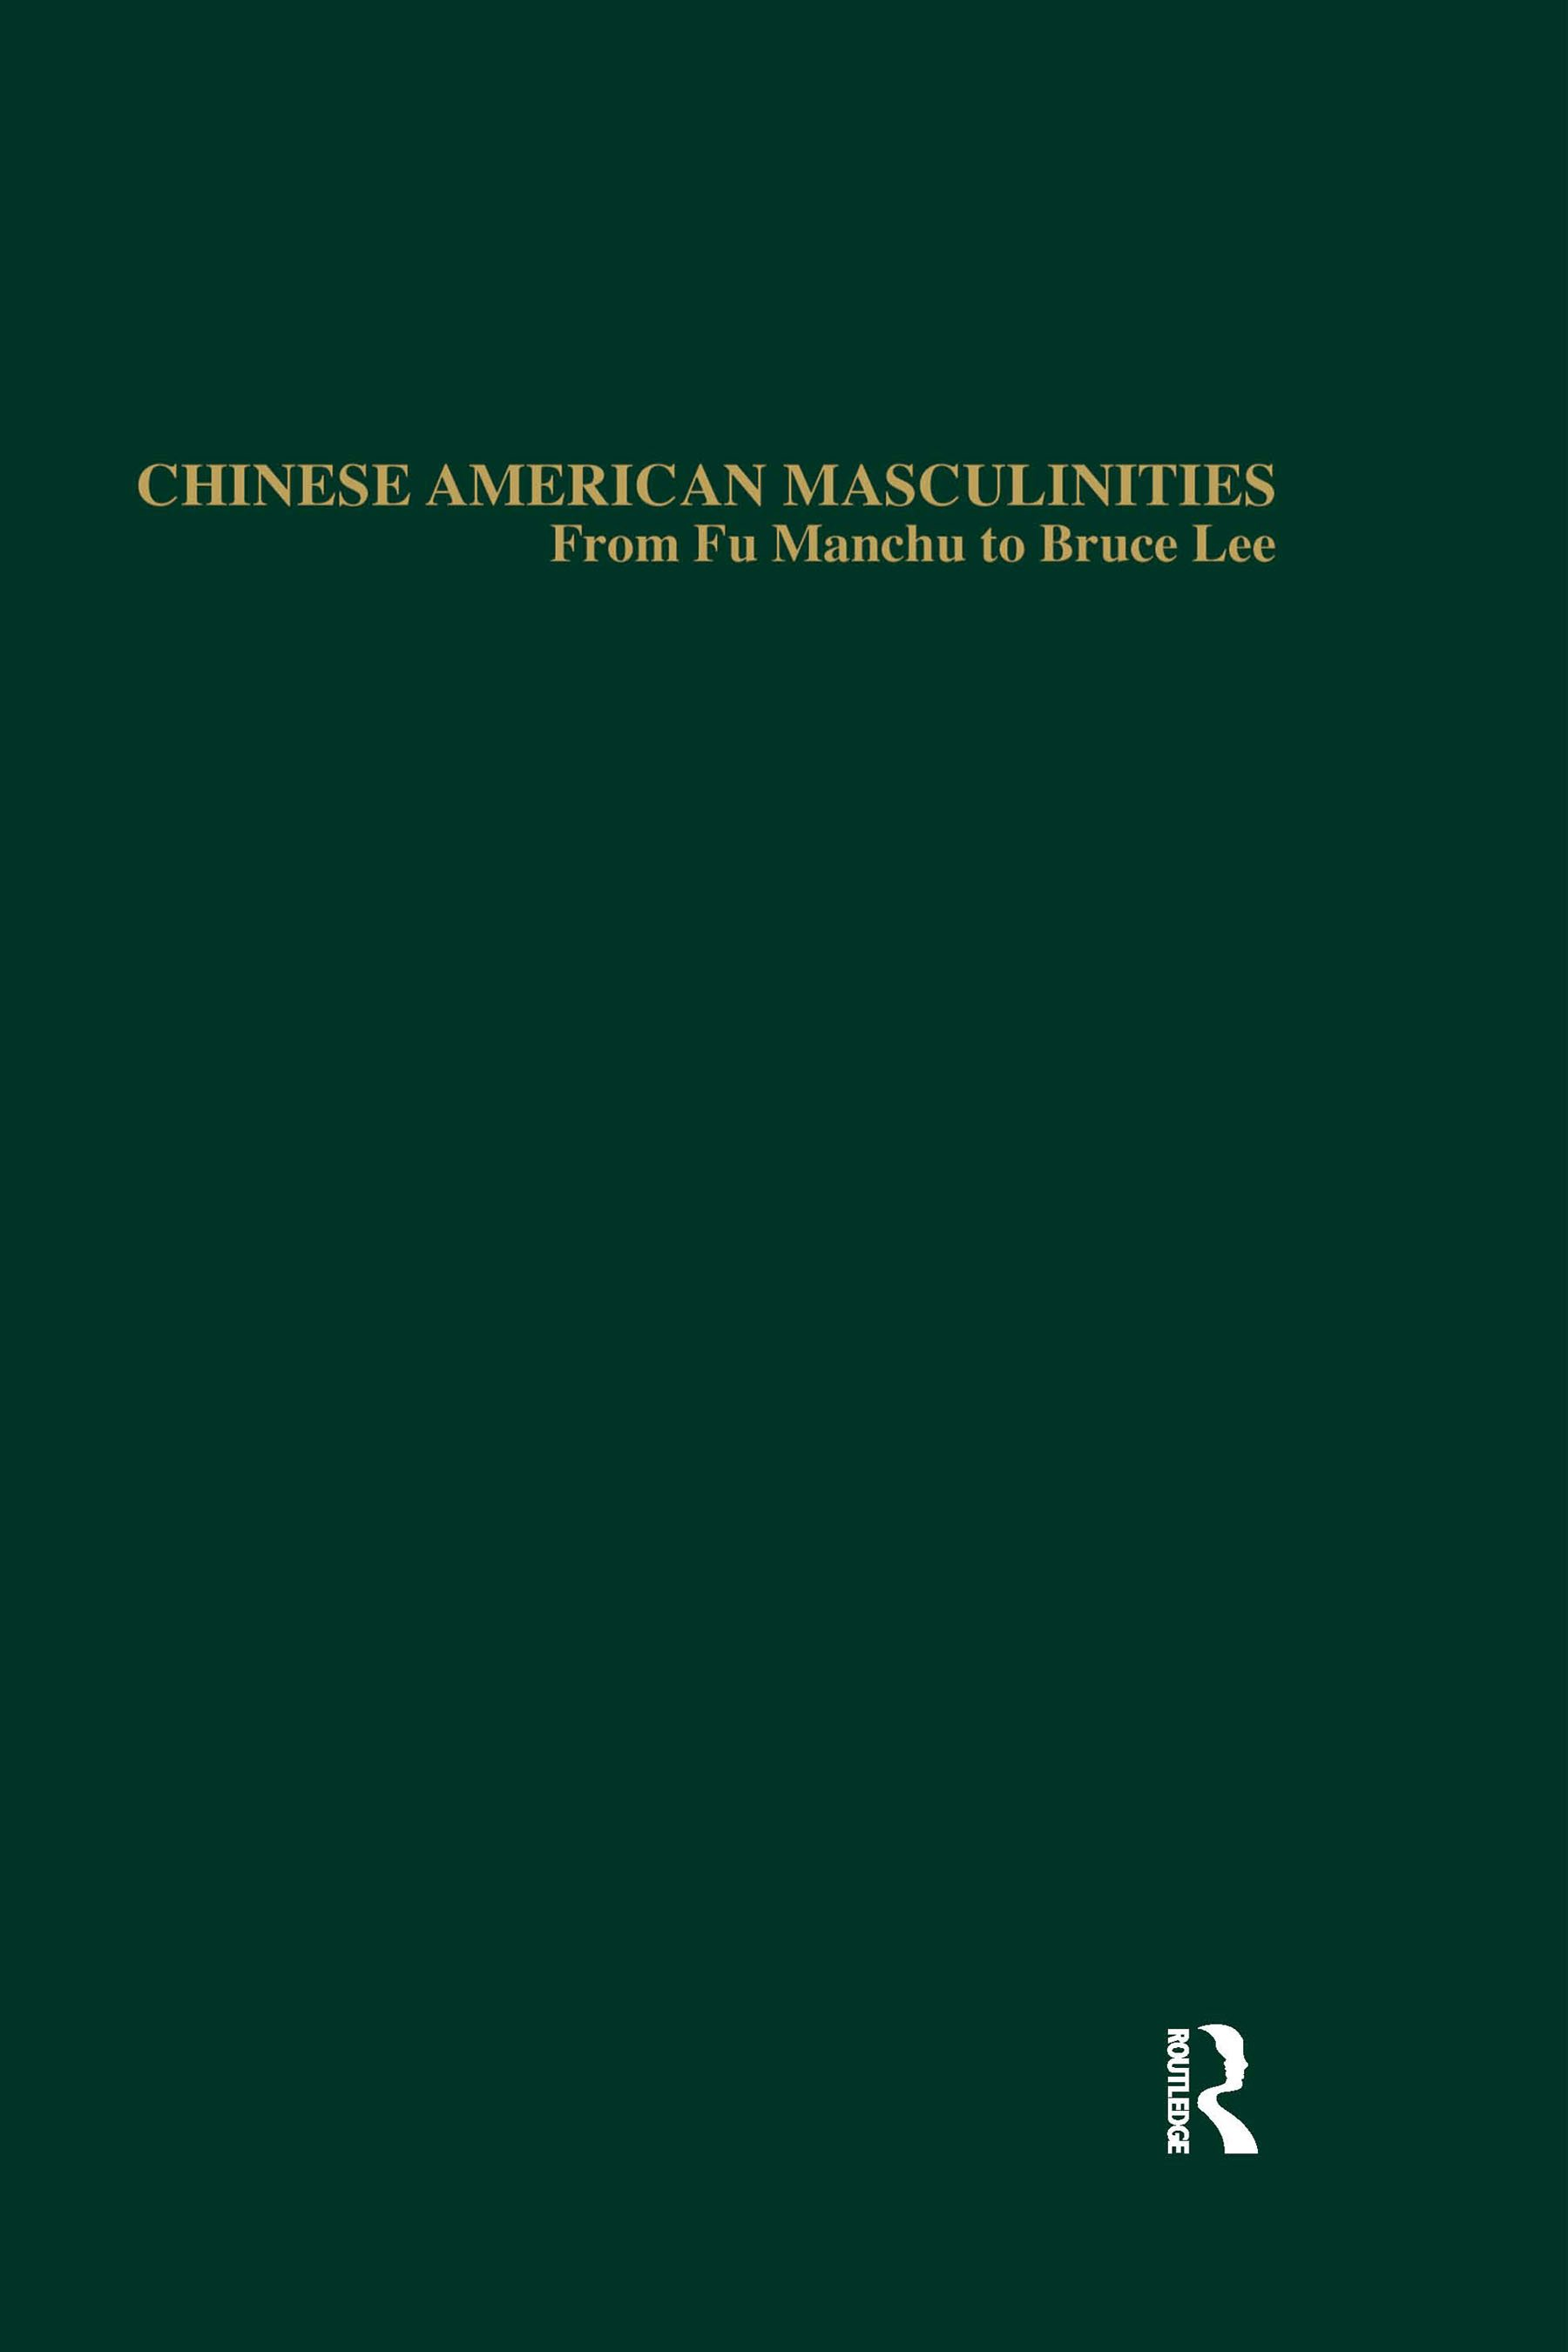 Chinese American Masculinities